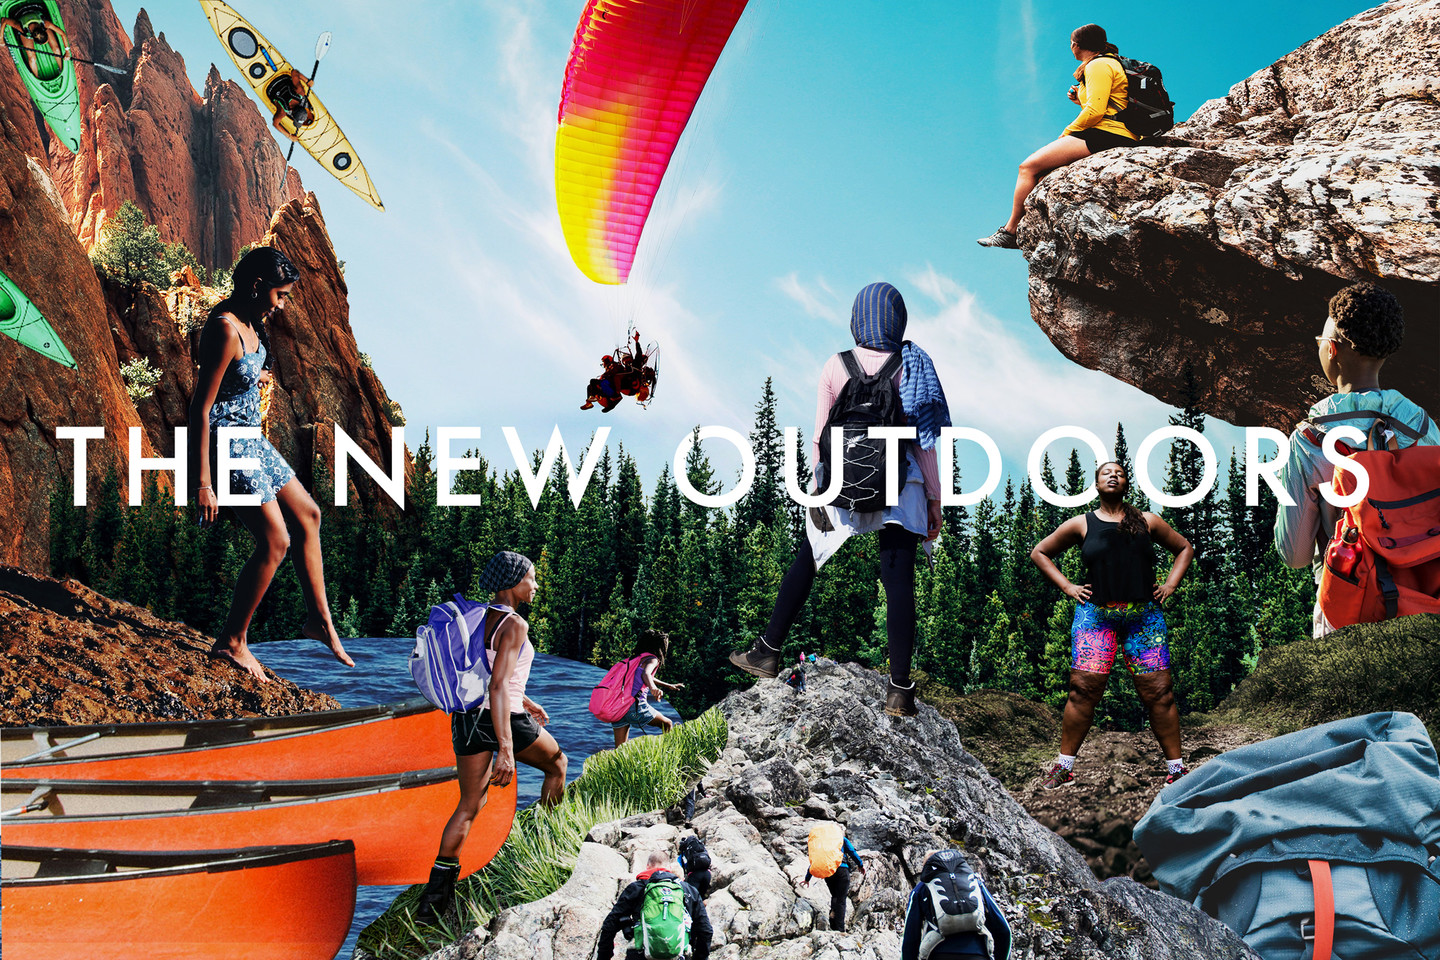 collage image of various images of people in the outdoors with the words